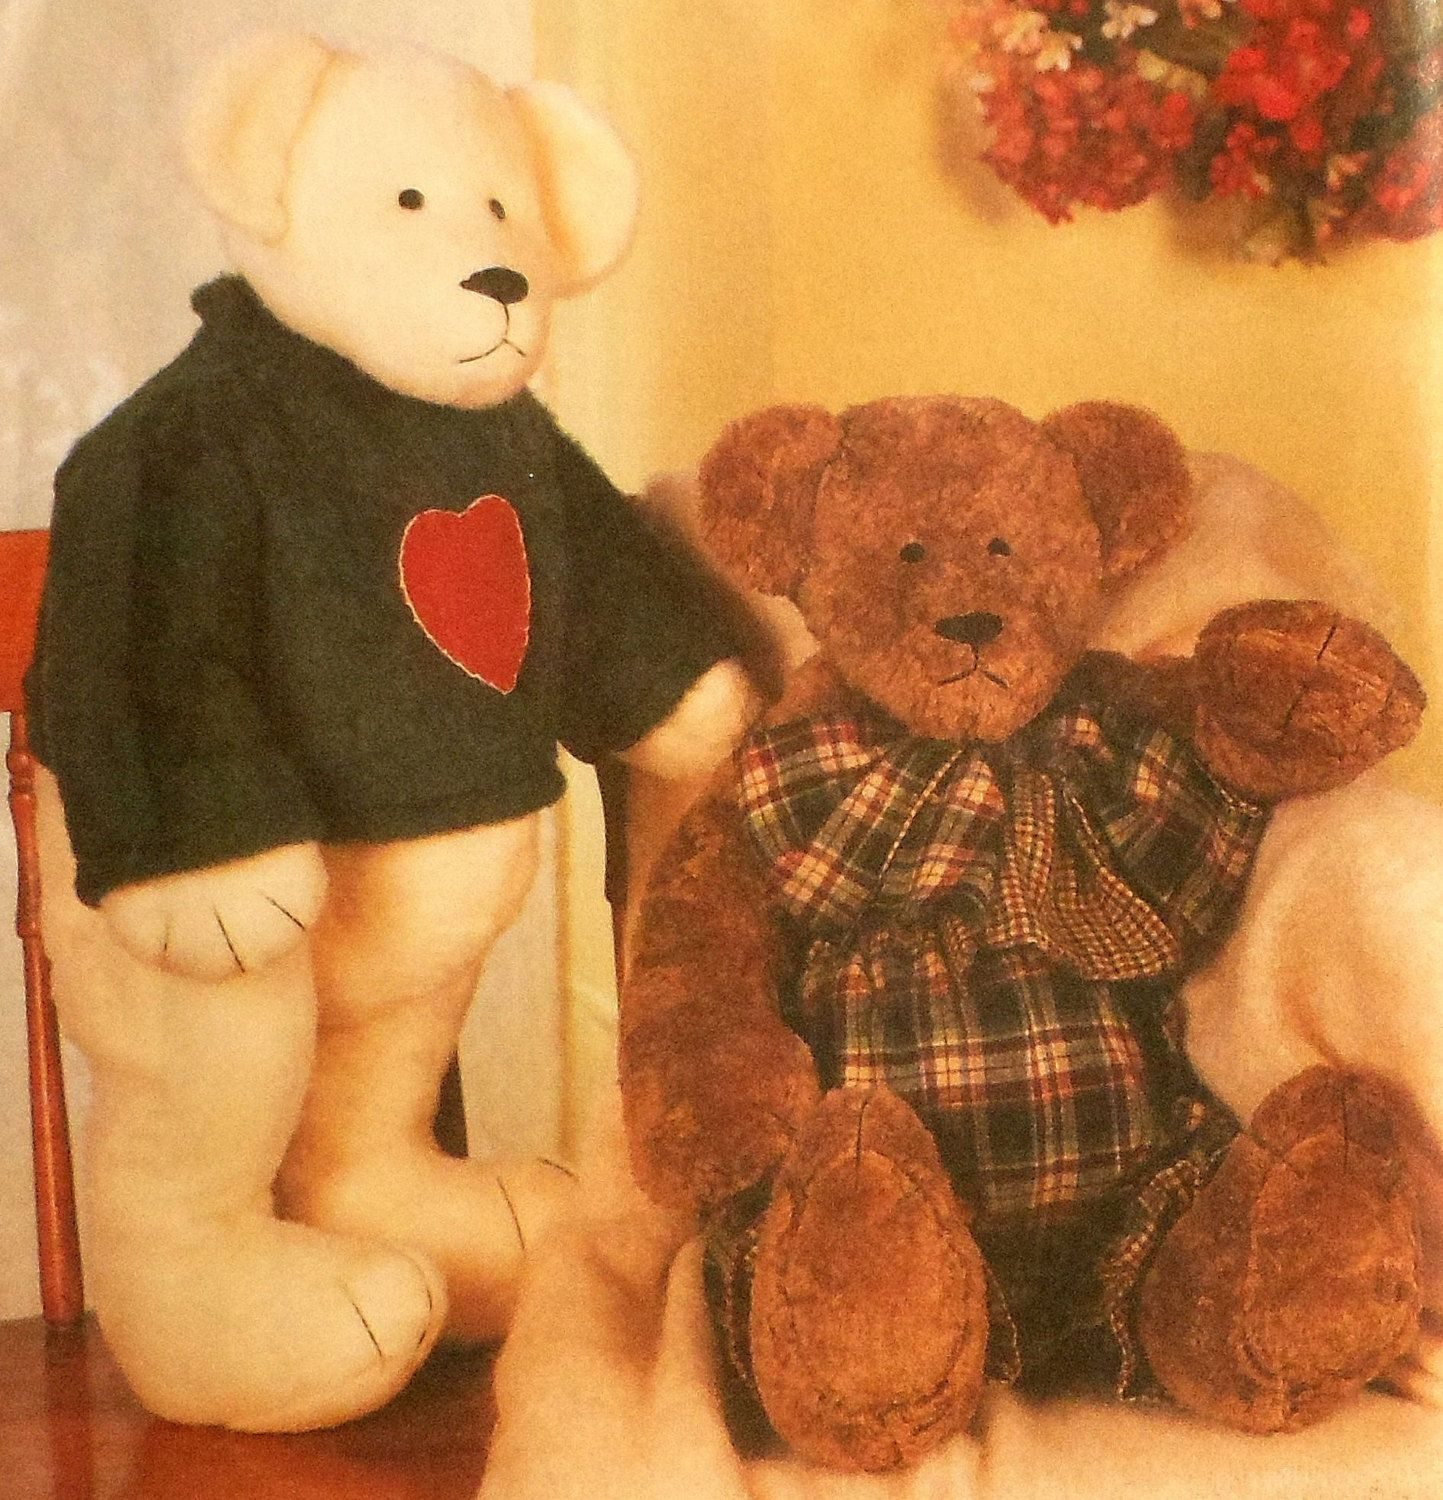 Sewing patterns for teddy bears image collections craft jointed teddy bear sewing pattern sewing pinterest teddy jointed teddy bear sewing pattern jeuxipadfo image collections jeuxipadfo Images